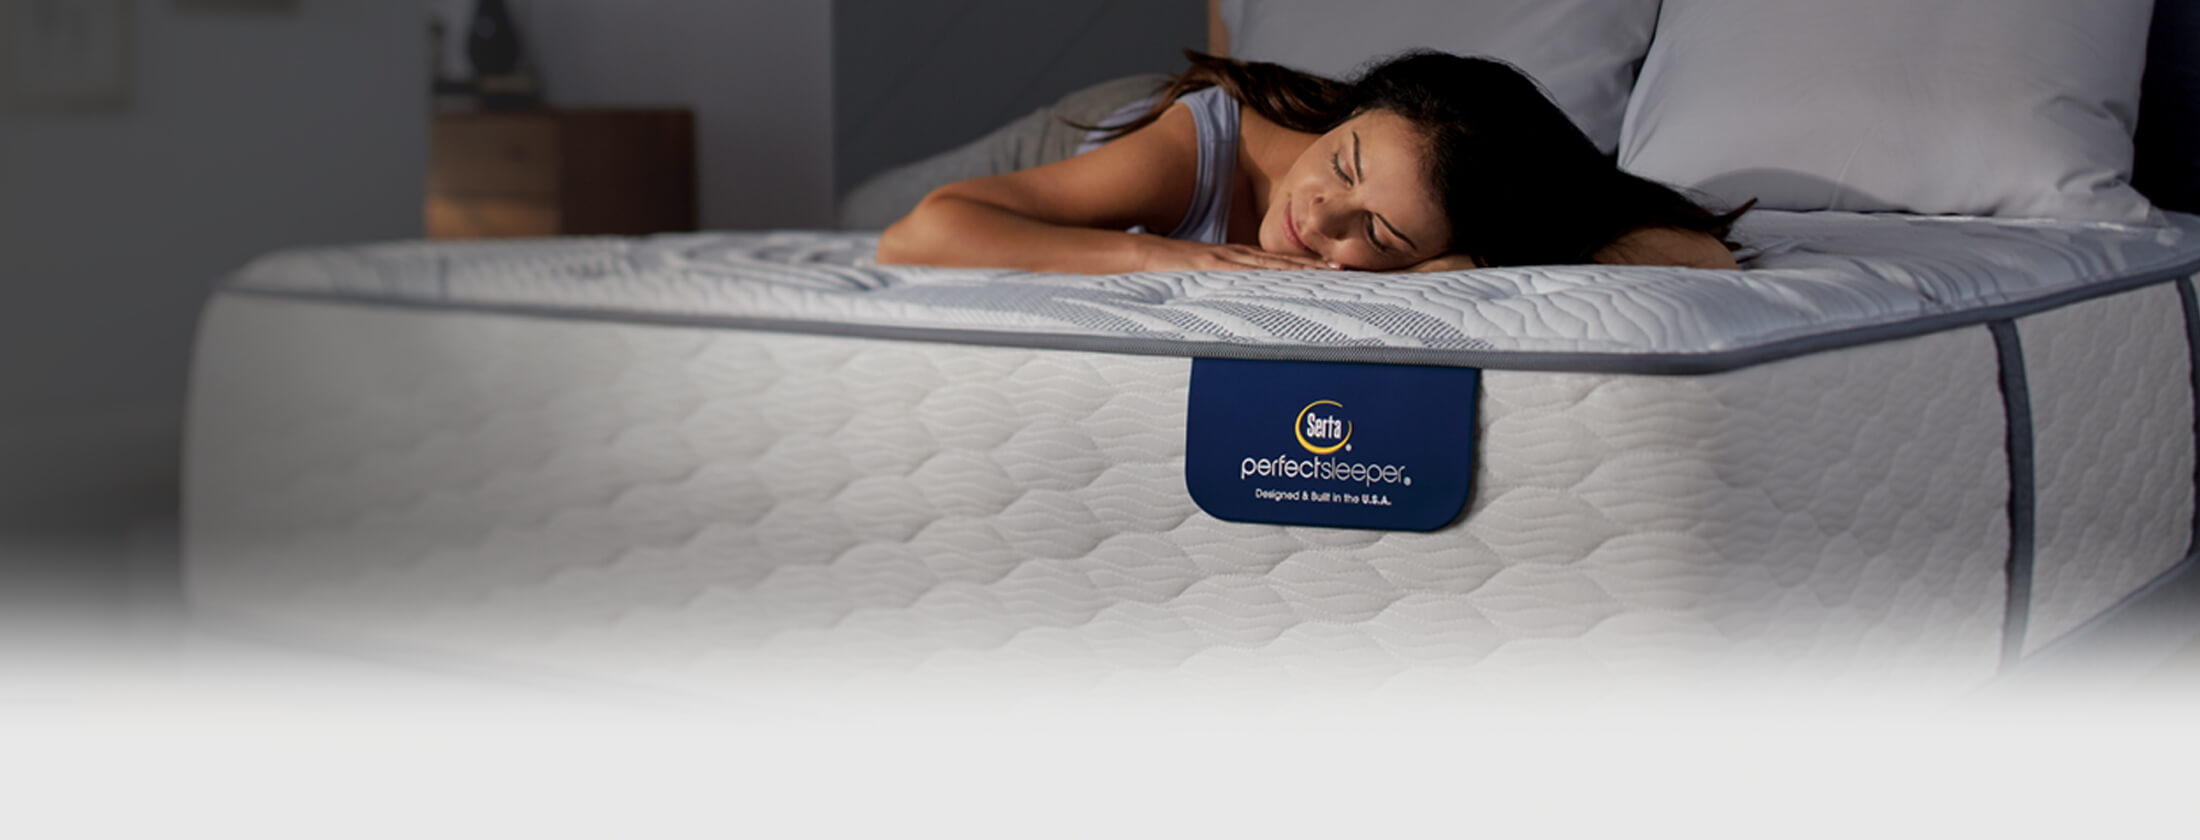 Serta Mattress Uk King And Queen Size Mattress Comparison Serta